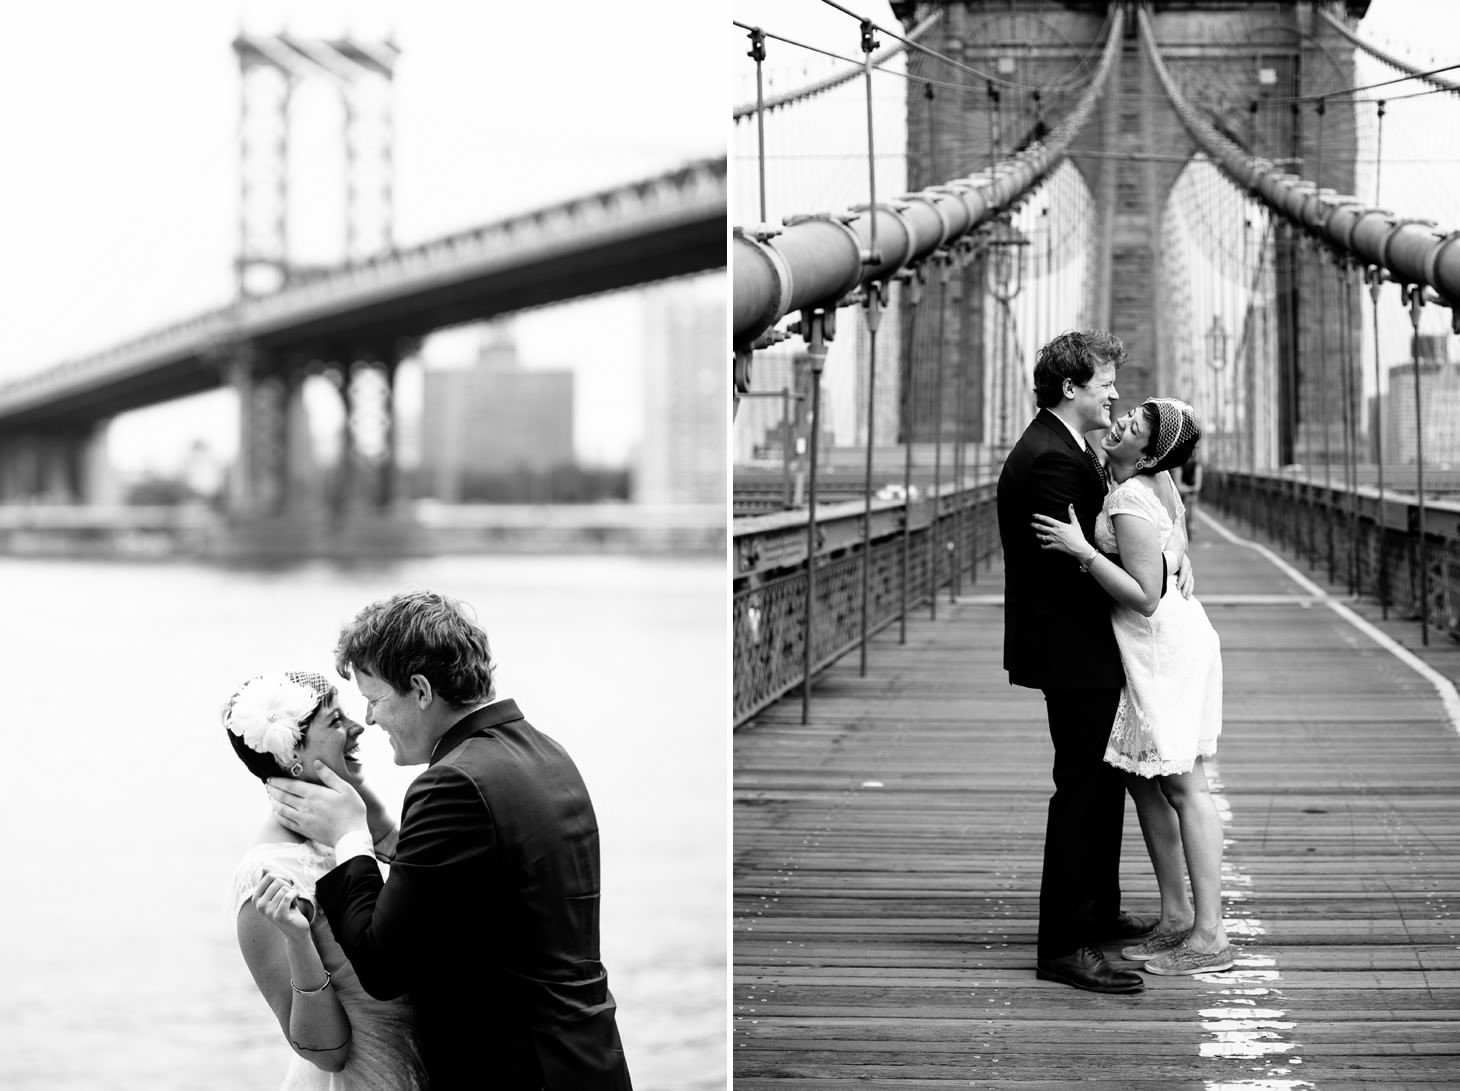 nyc-wedding-photographer-city-hall-elopement-smitten-chickens-sarah-hoppes-004.jpg